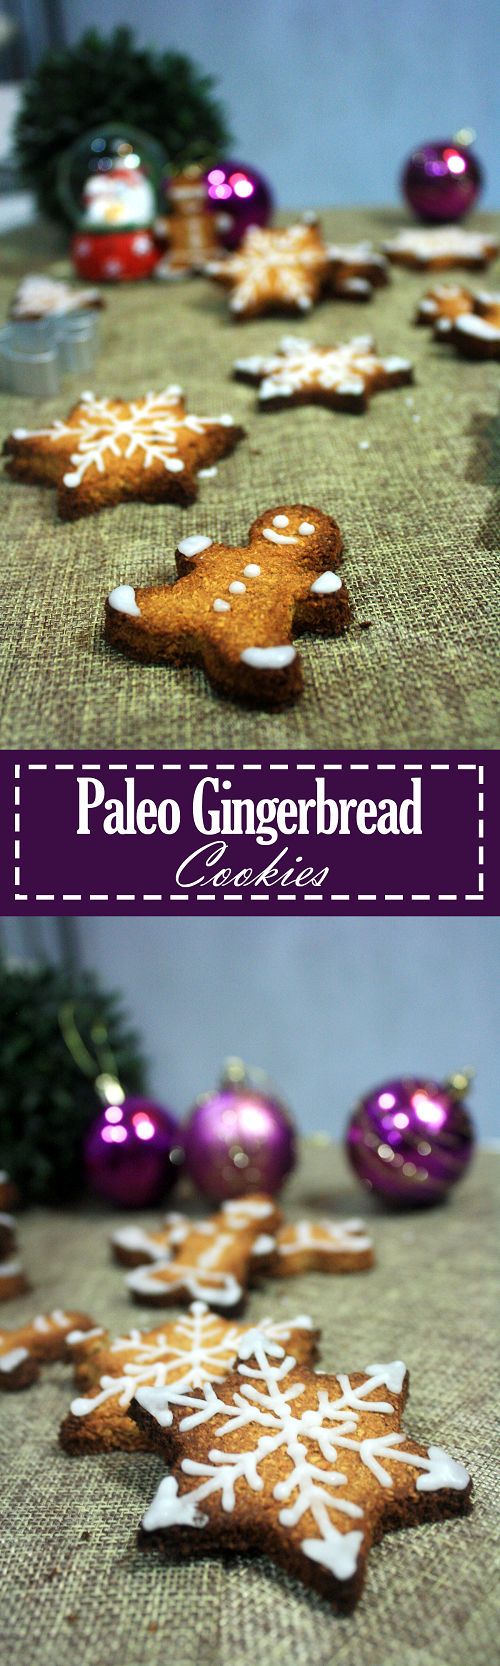 Paleo Gingerbread Cookies with Icing